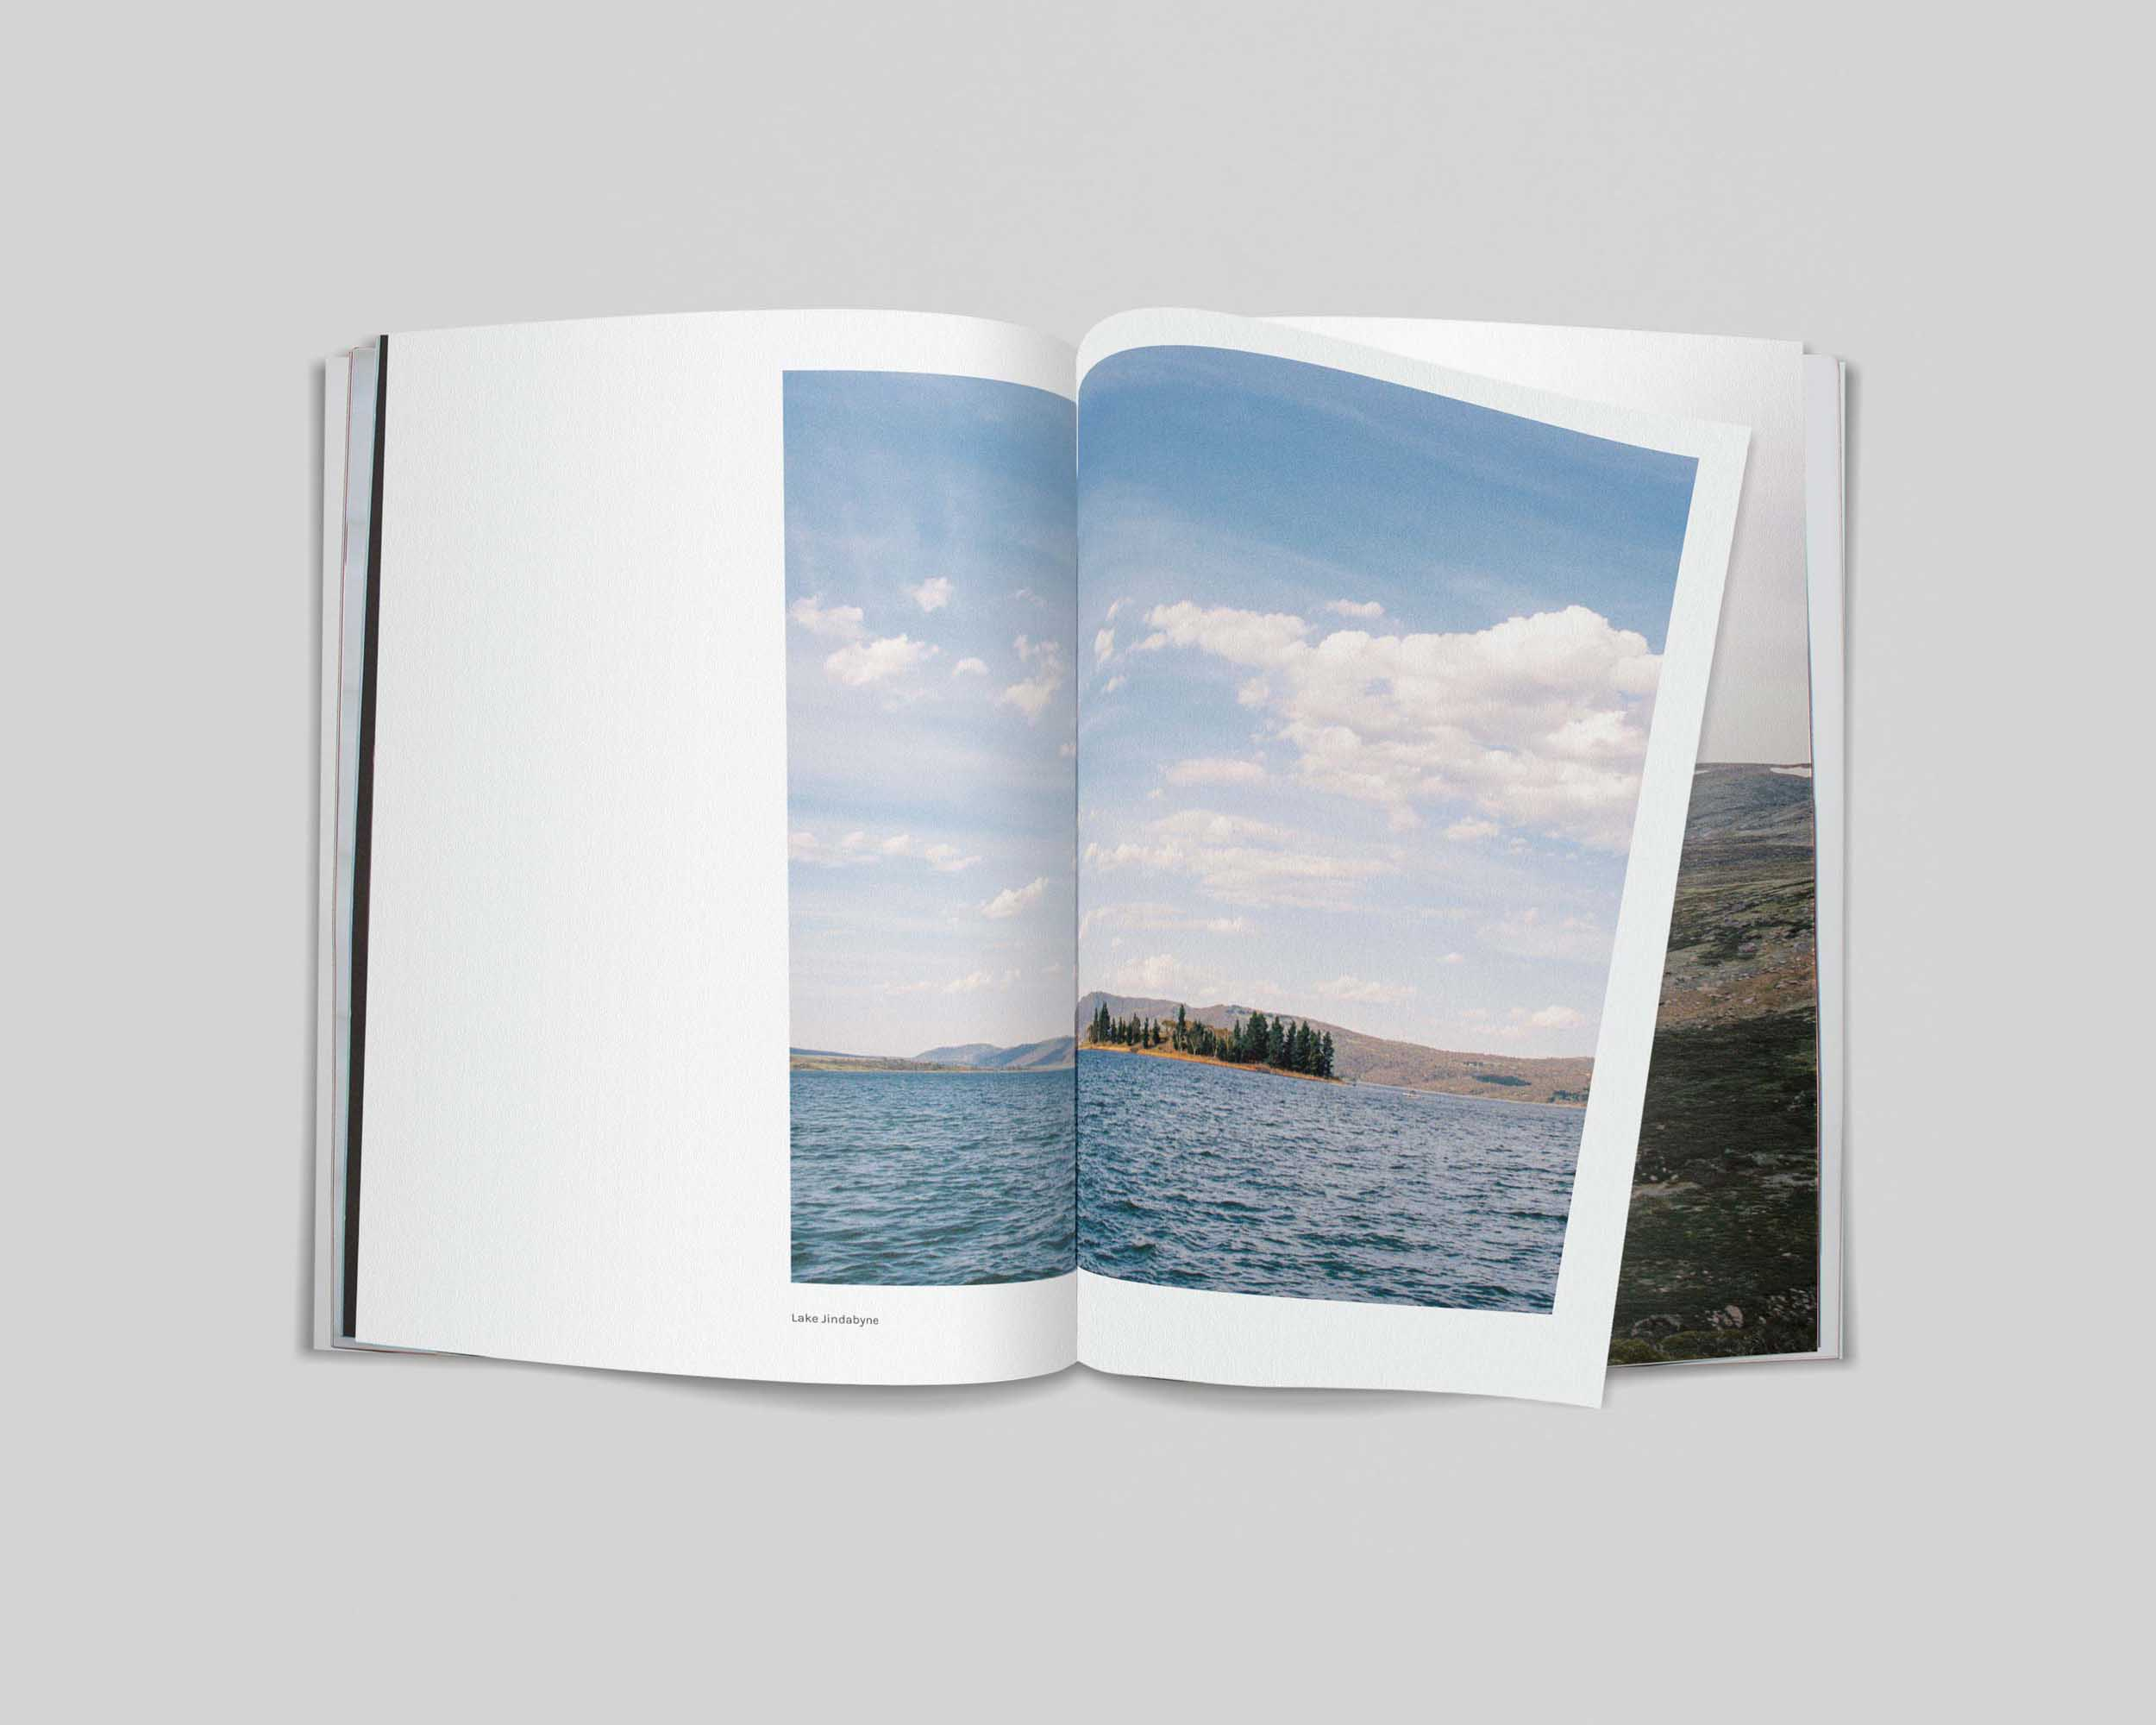 High Summer   High Summer is a photobook featuring photographs taken around the Snowy Mountains region during the summer season, exploring mountains, landmarks, townships and dams.